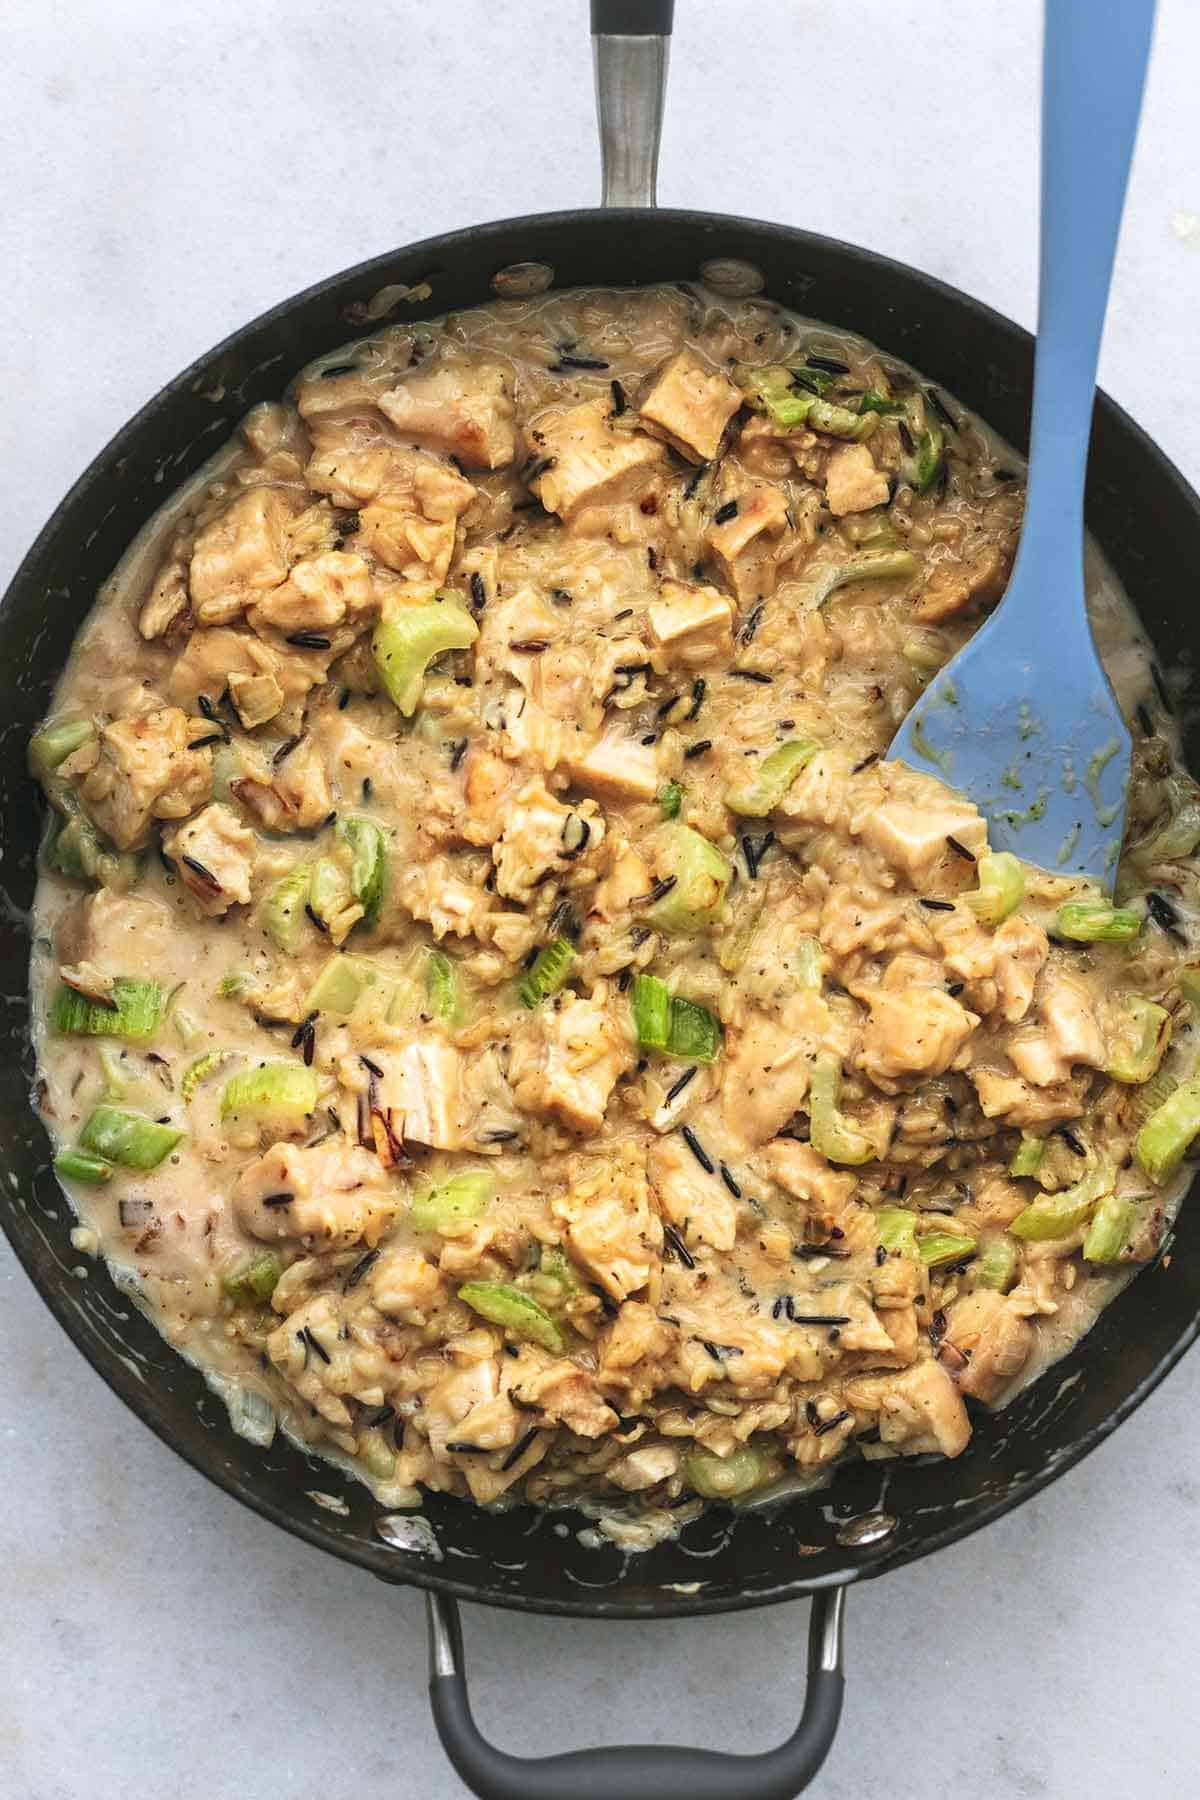 overhead view of skillet filled with chicken, rice, and celery with blue rubber spatula